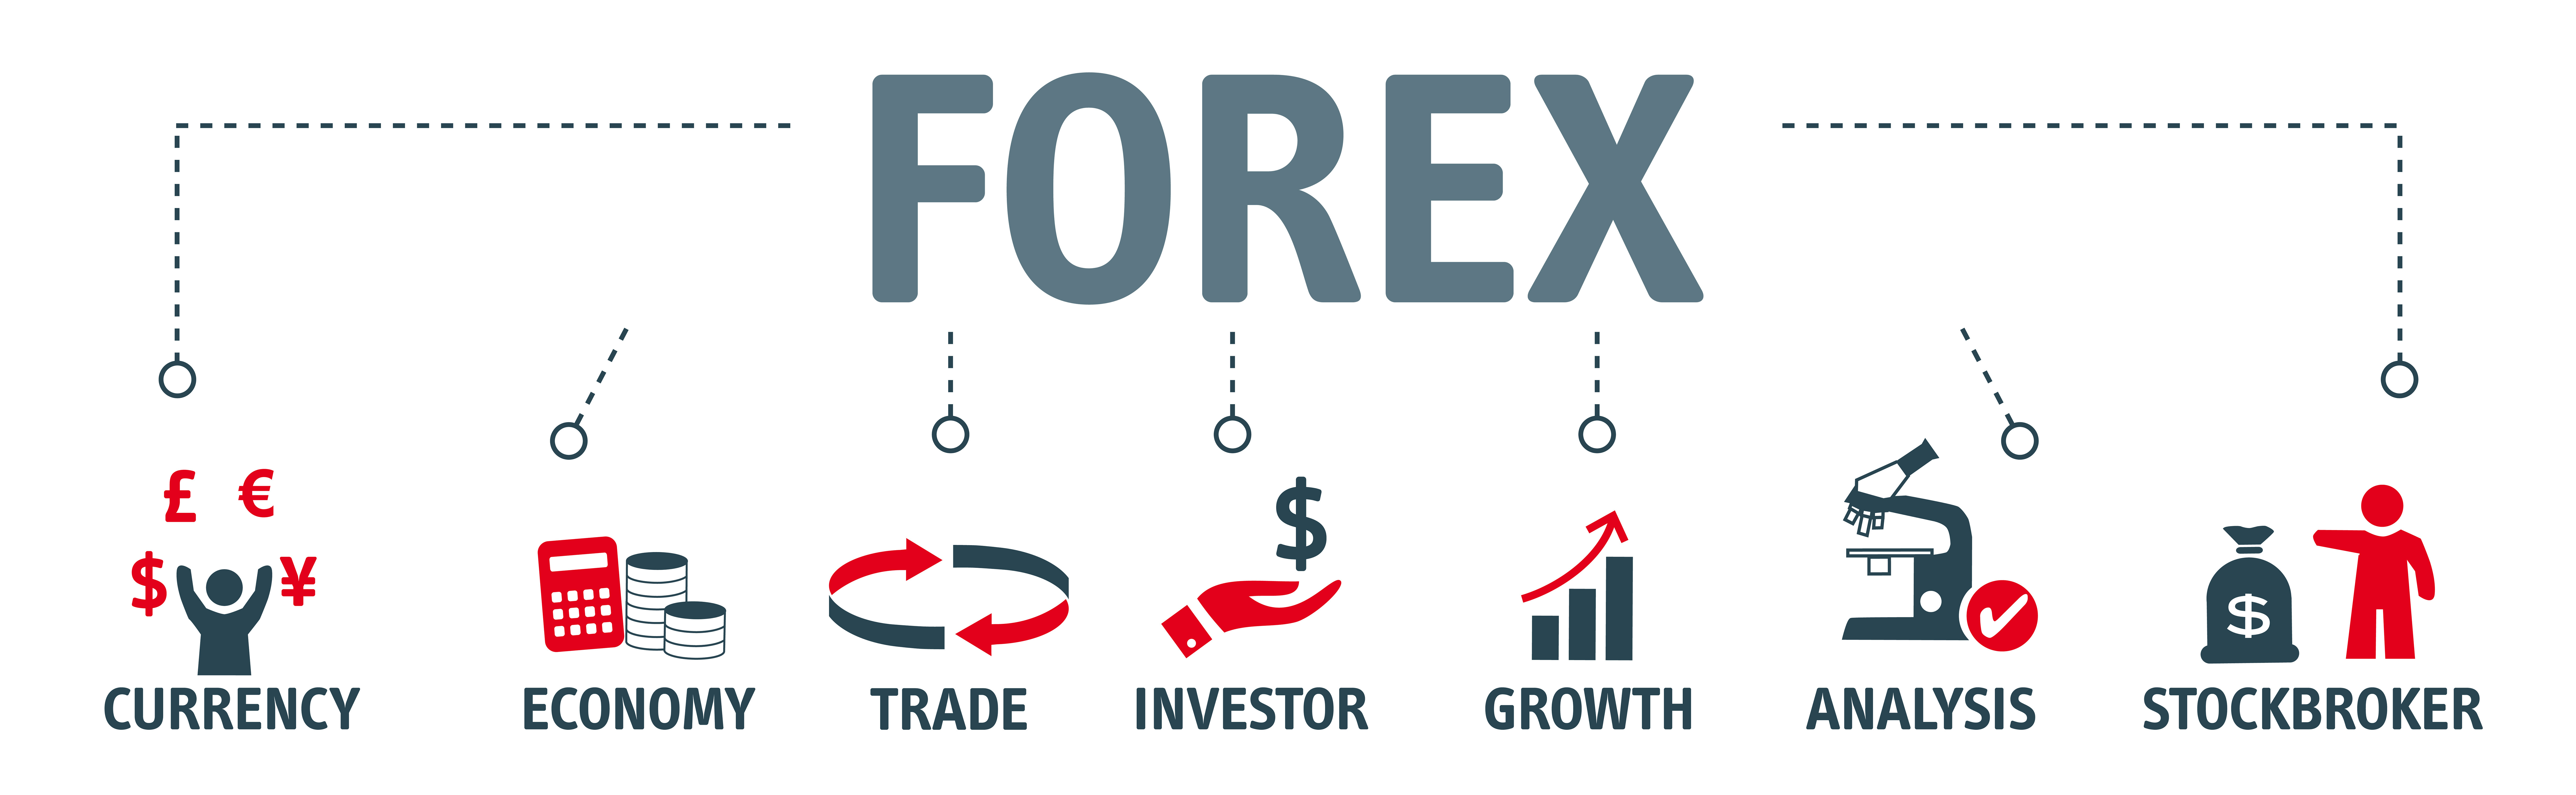 Forex Trading lernen Test